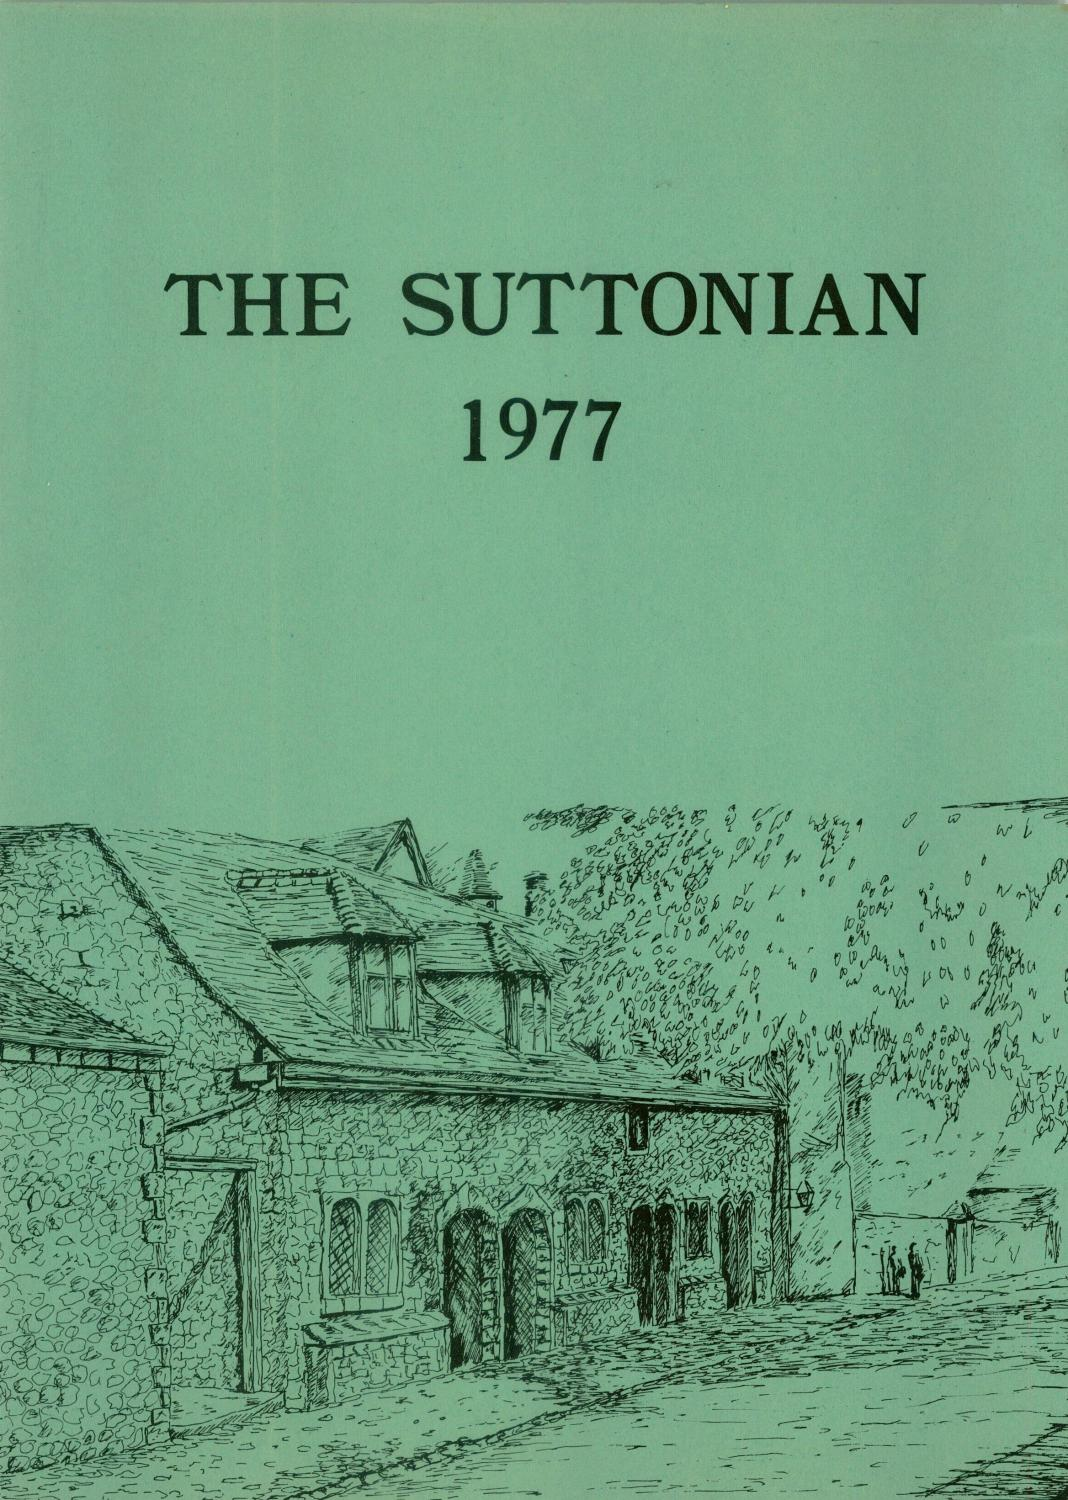 1c3a0fb7e41 The Suttonian 1977 by Sutton Valence School - issuu